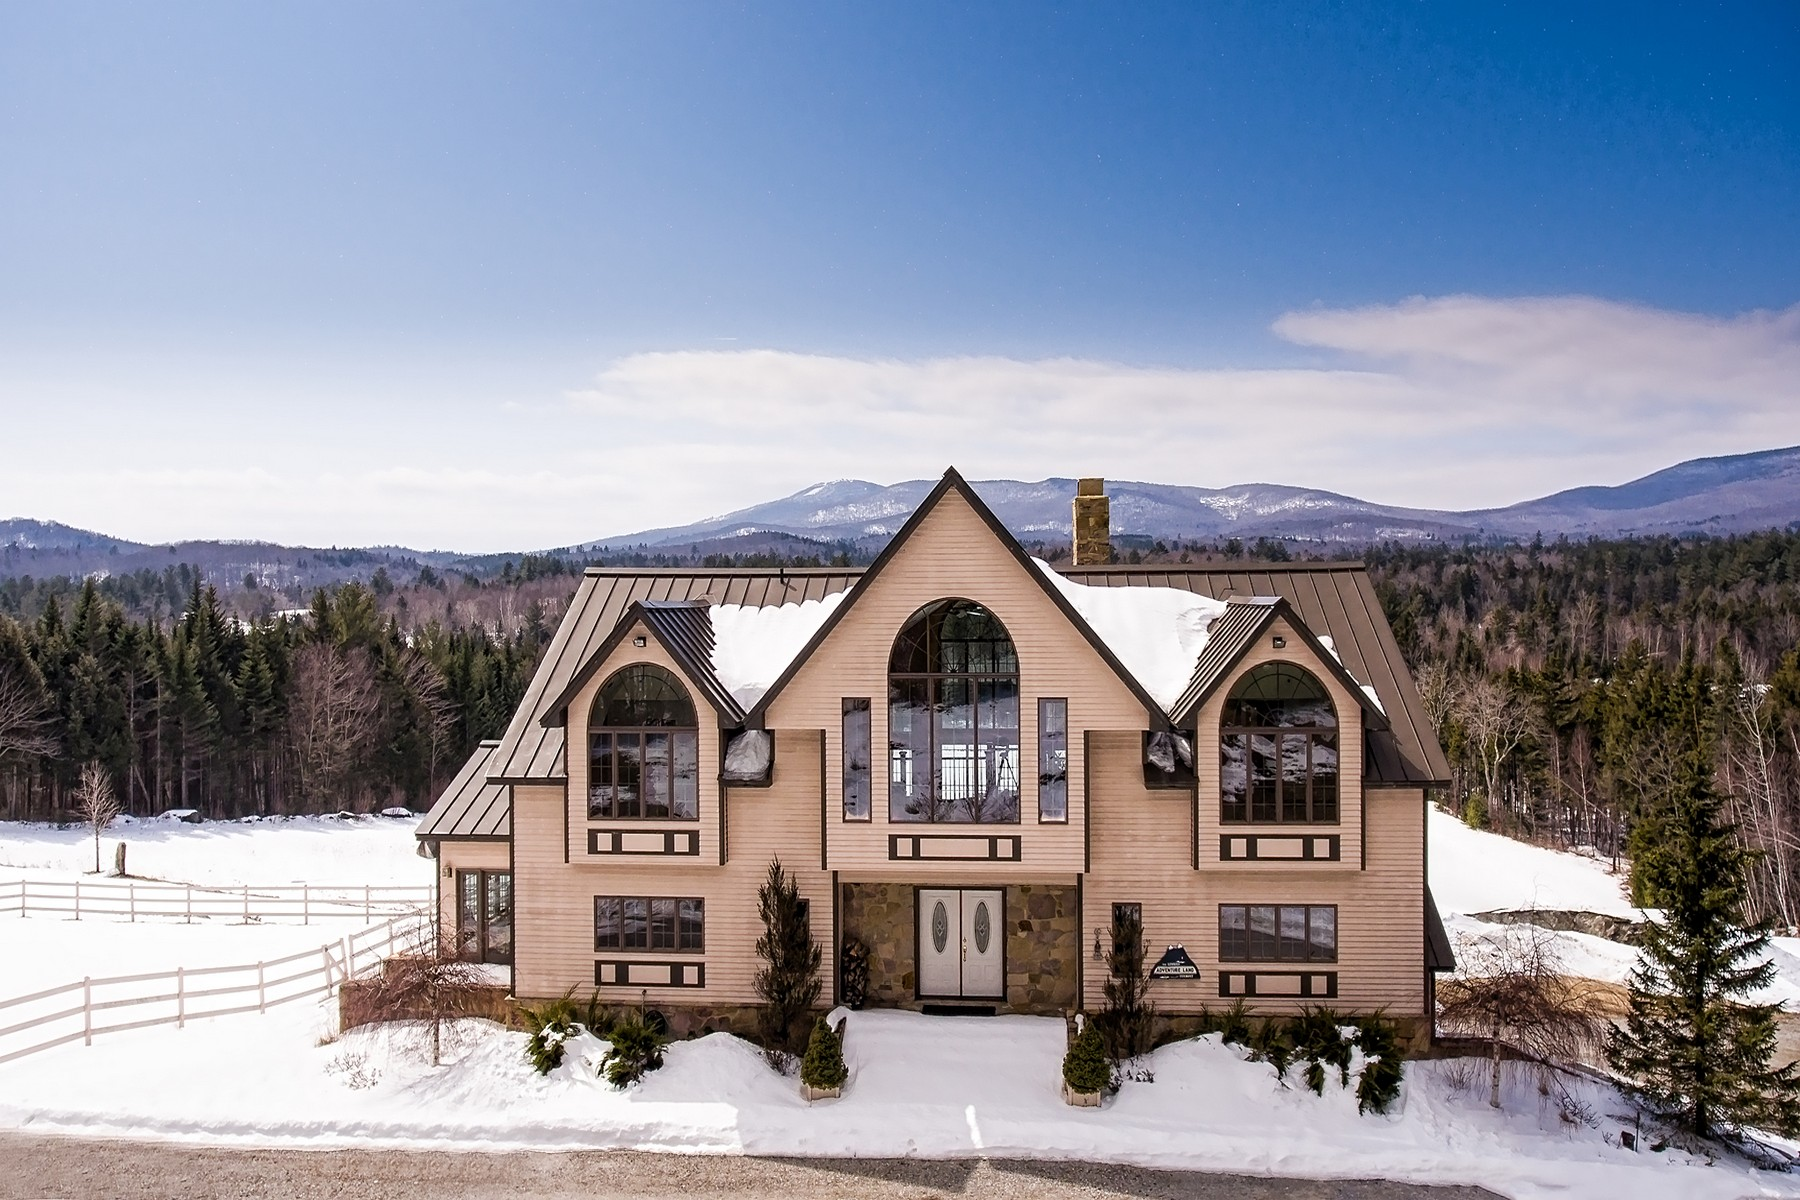 Casa Unifamiliar por un Venta en Vast Views with Pond and Privacy 123 Nichols Peru, Vermont, 05152 Estados Unidos